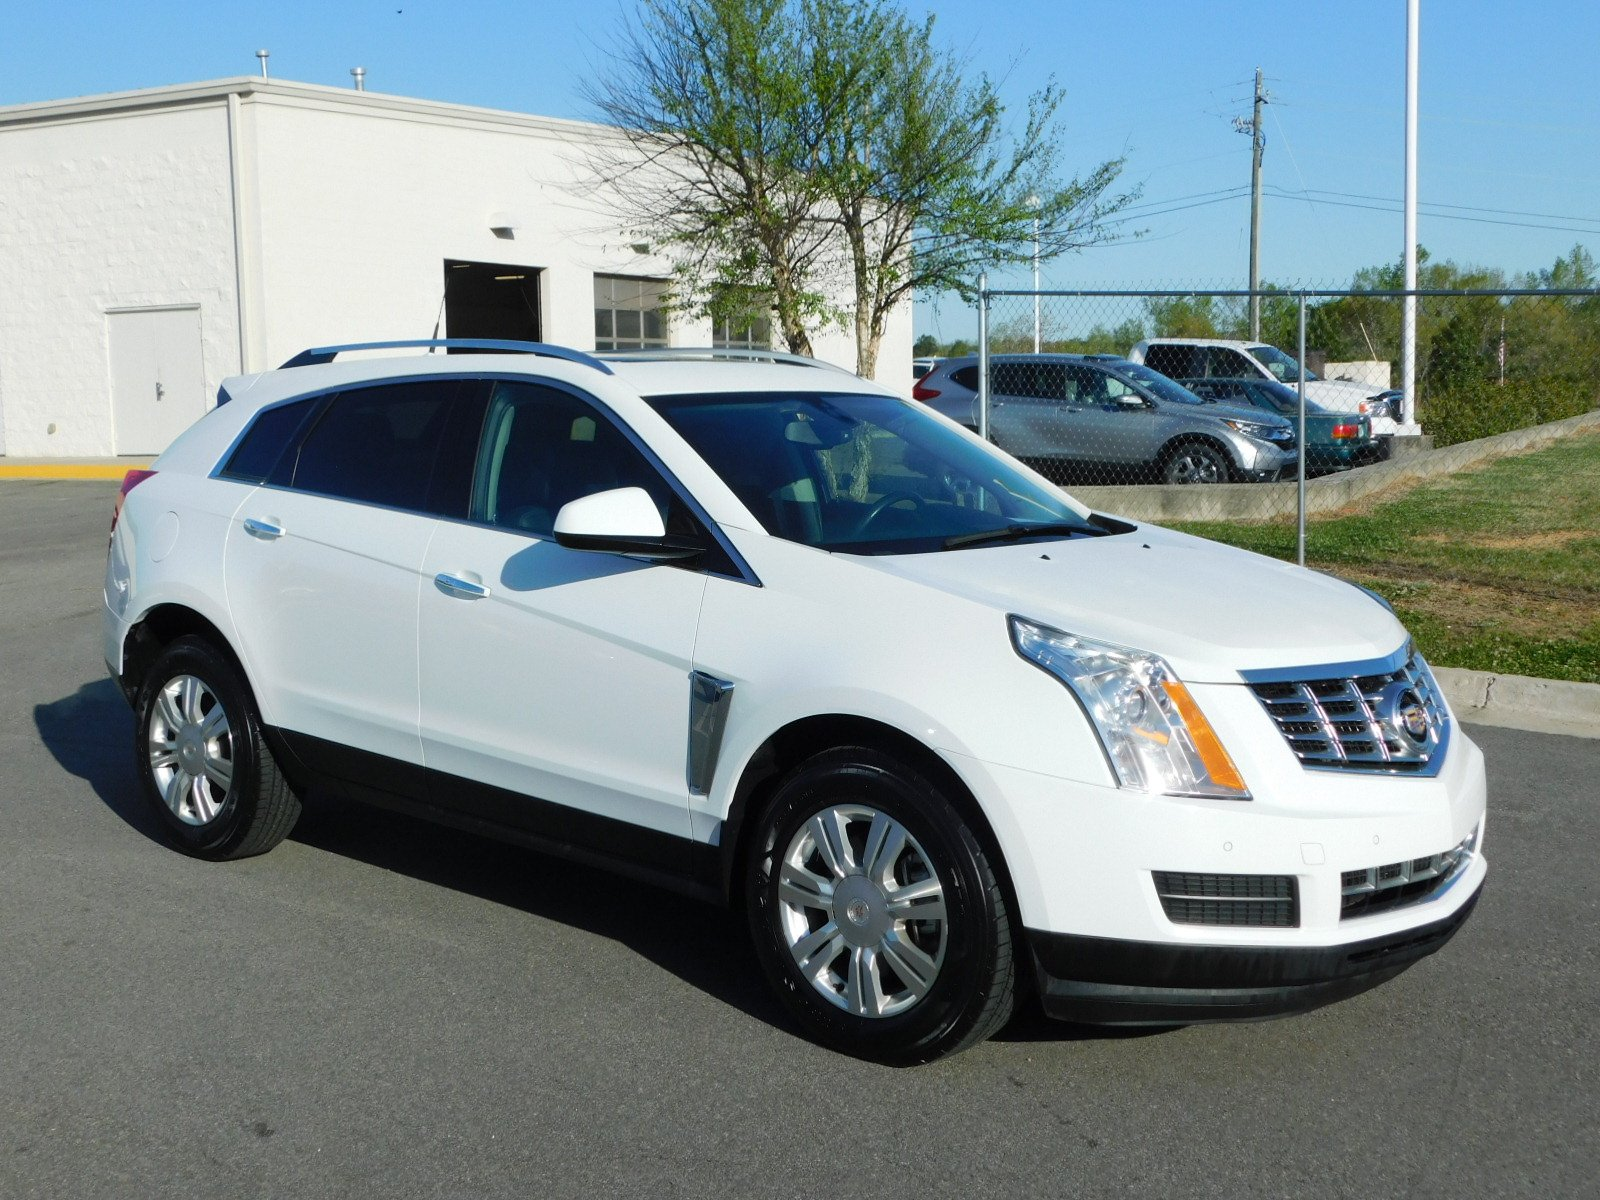 srx in florida cadillac used sale suv for performance cars fine miami stock fl carsforsale